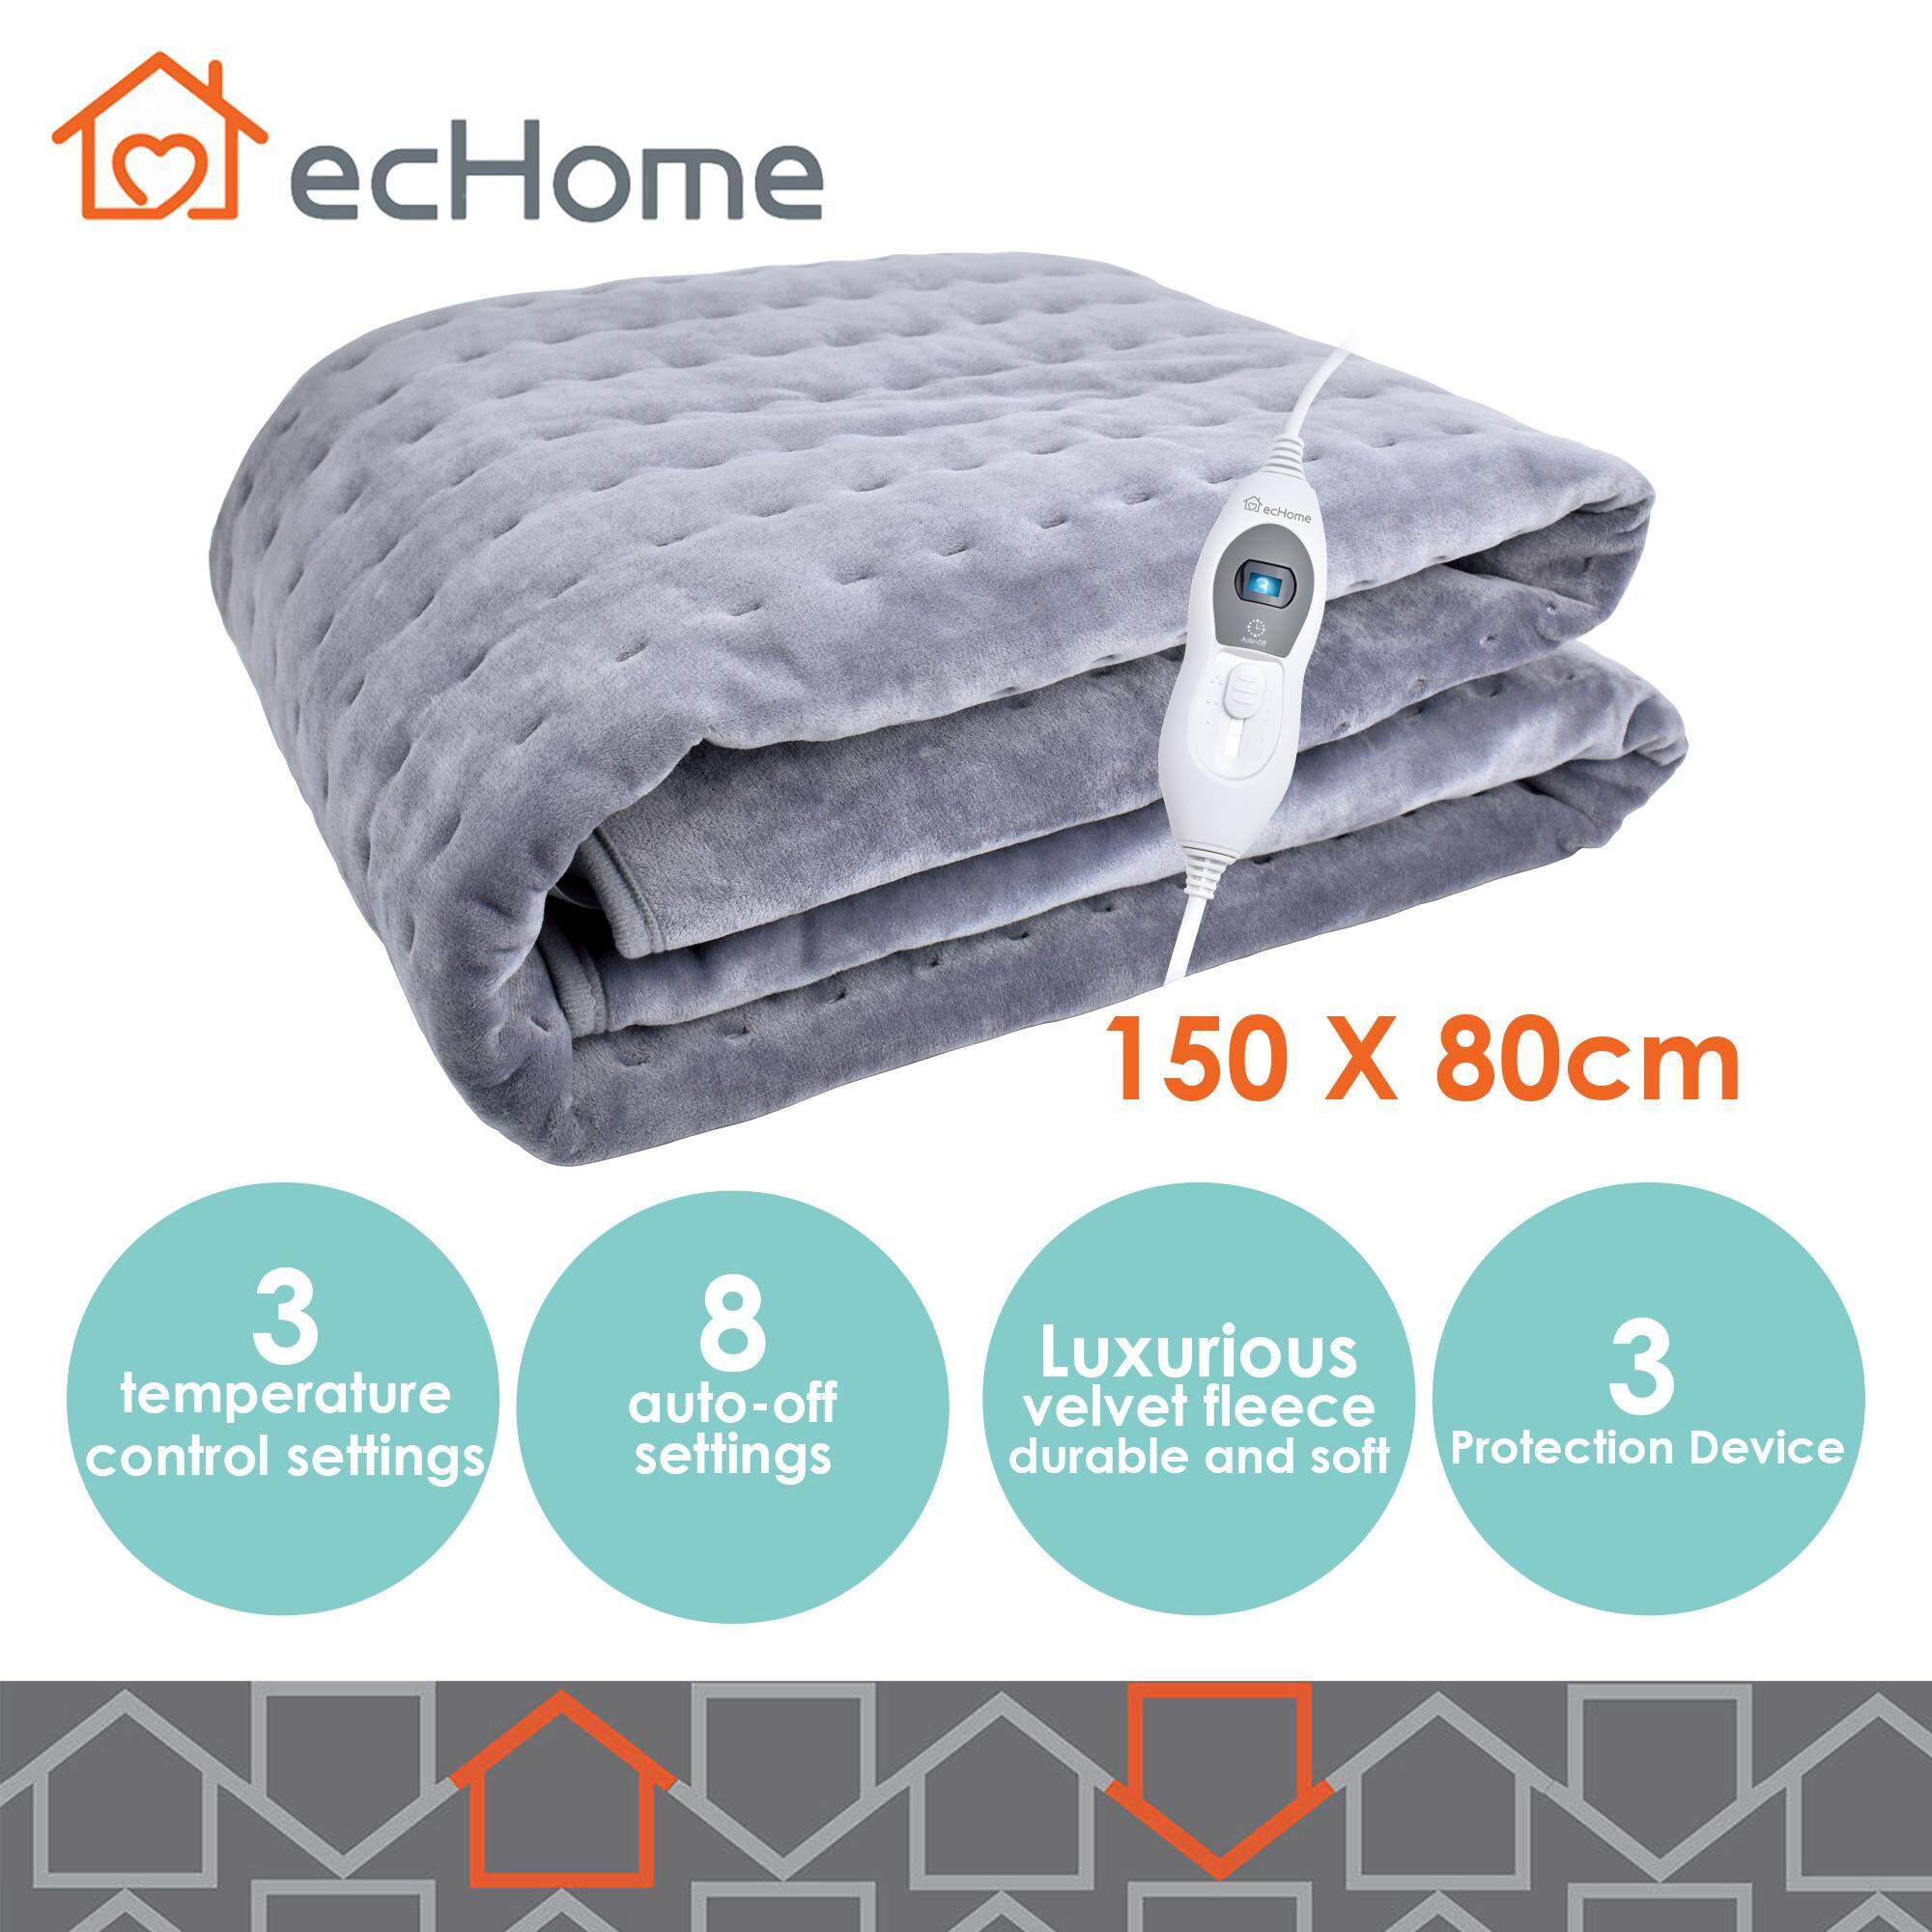 Echome Washable Velvet Flannel Fleece Heated Electric Blanket 150x80cm W/ Timer By Echome.